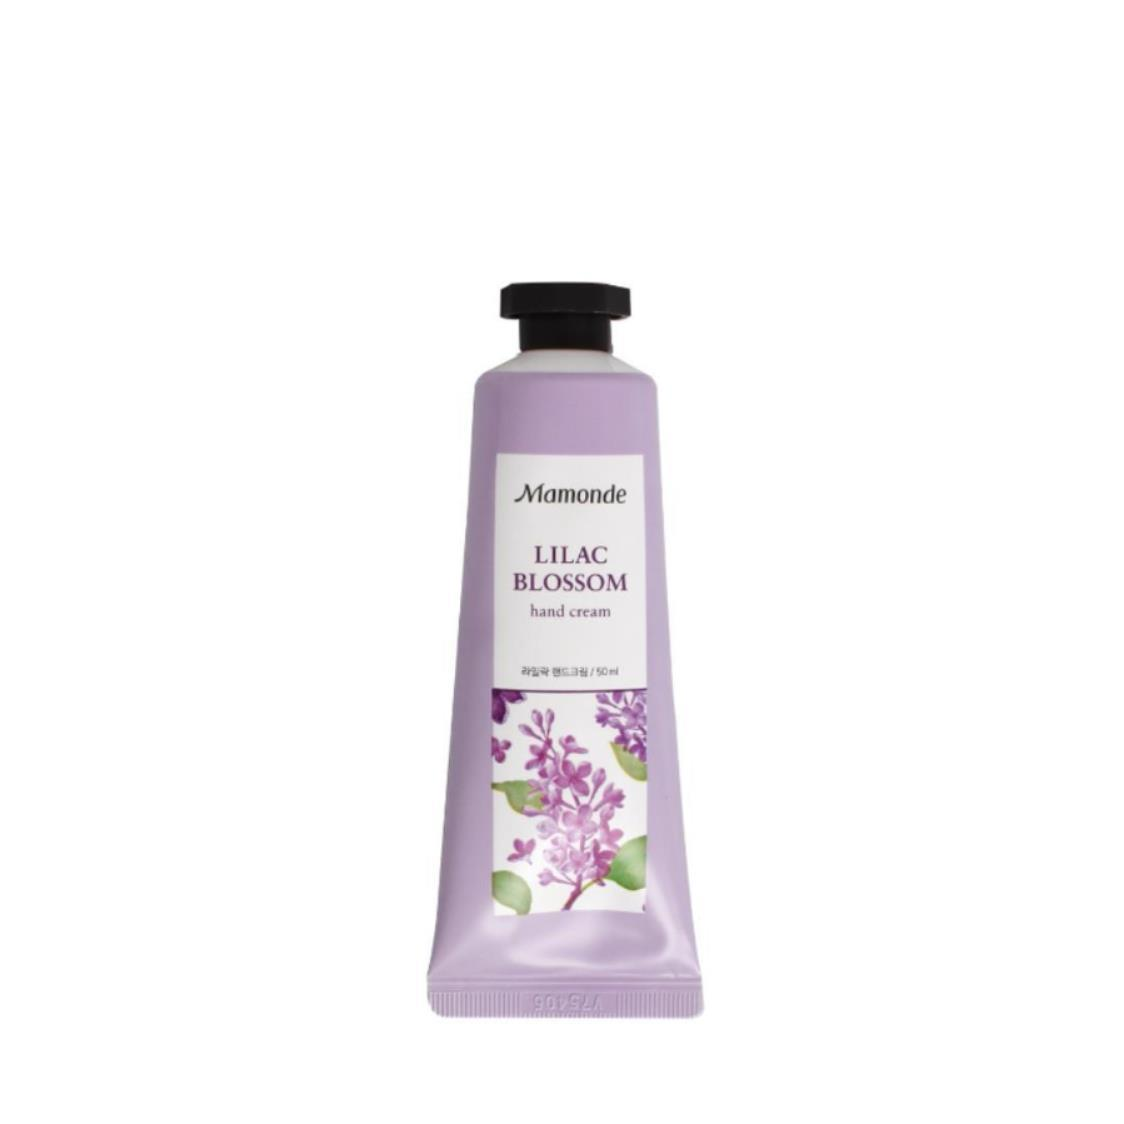 Lilac Blossom Hand Cream 50ml